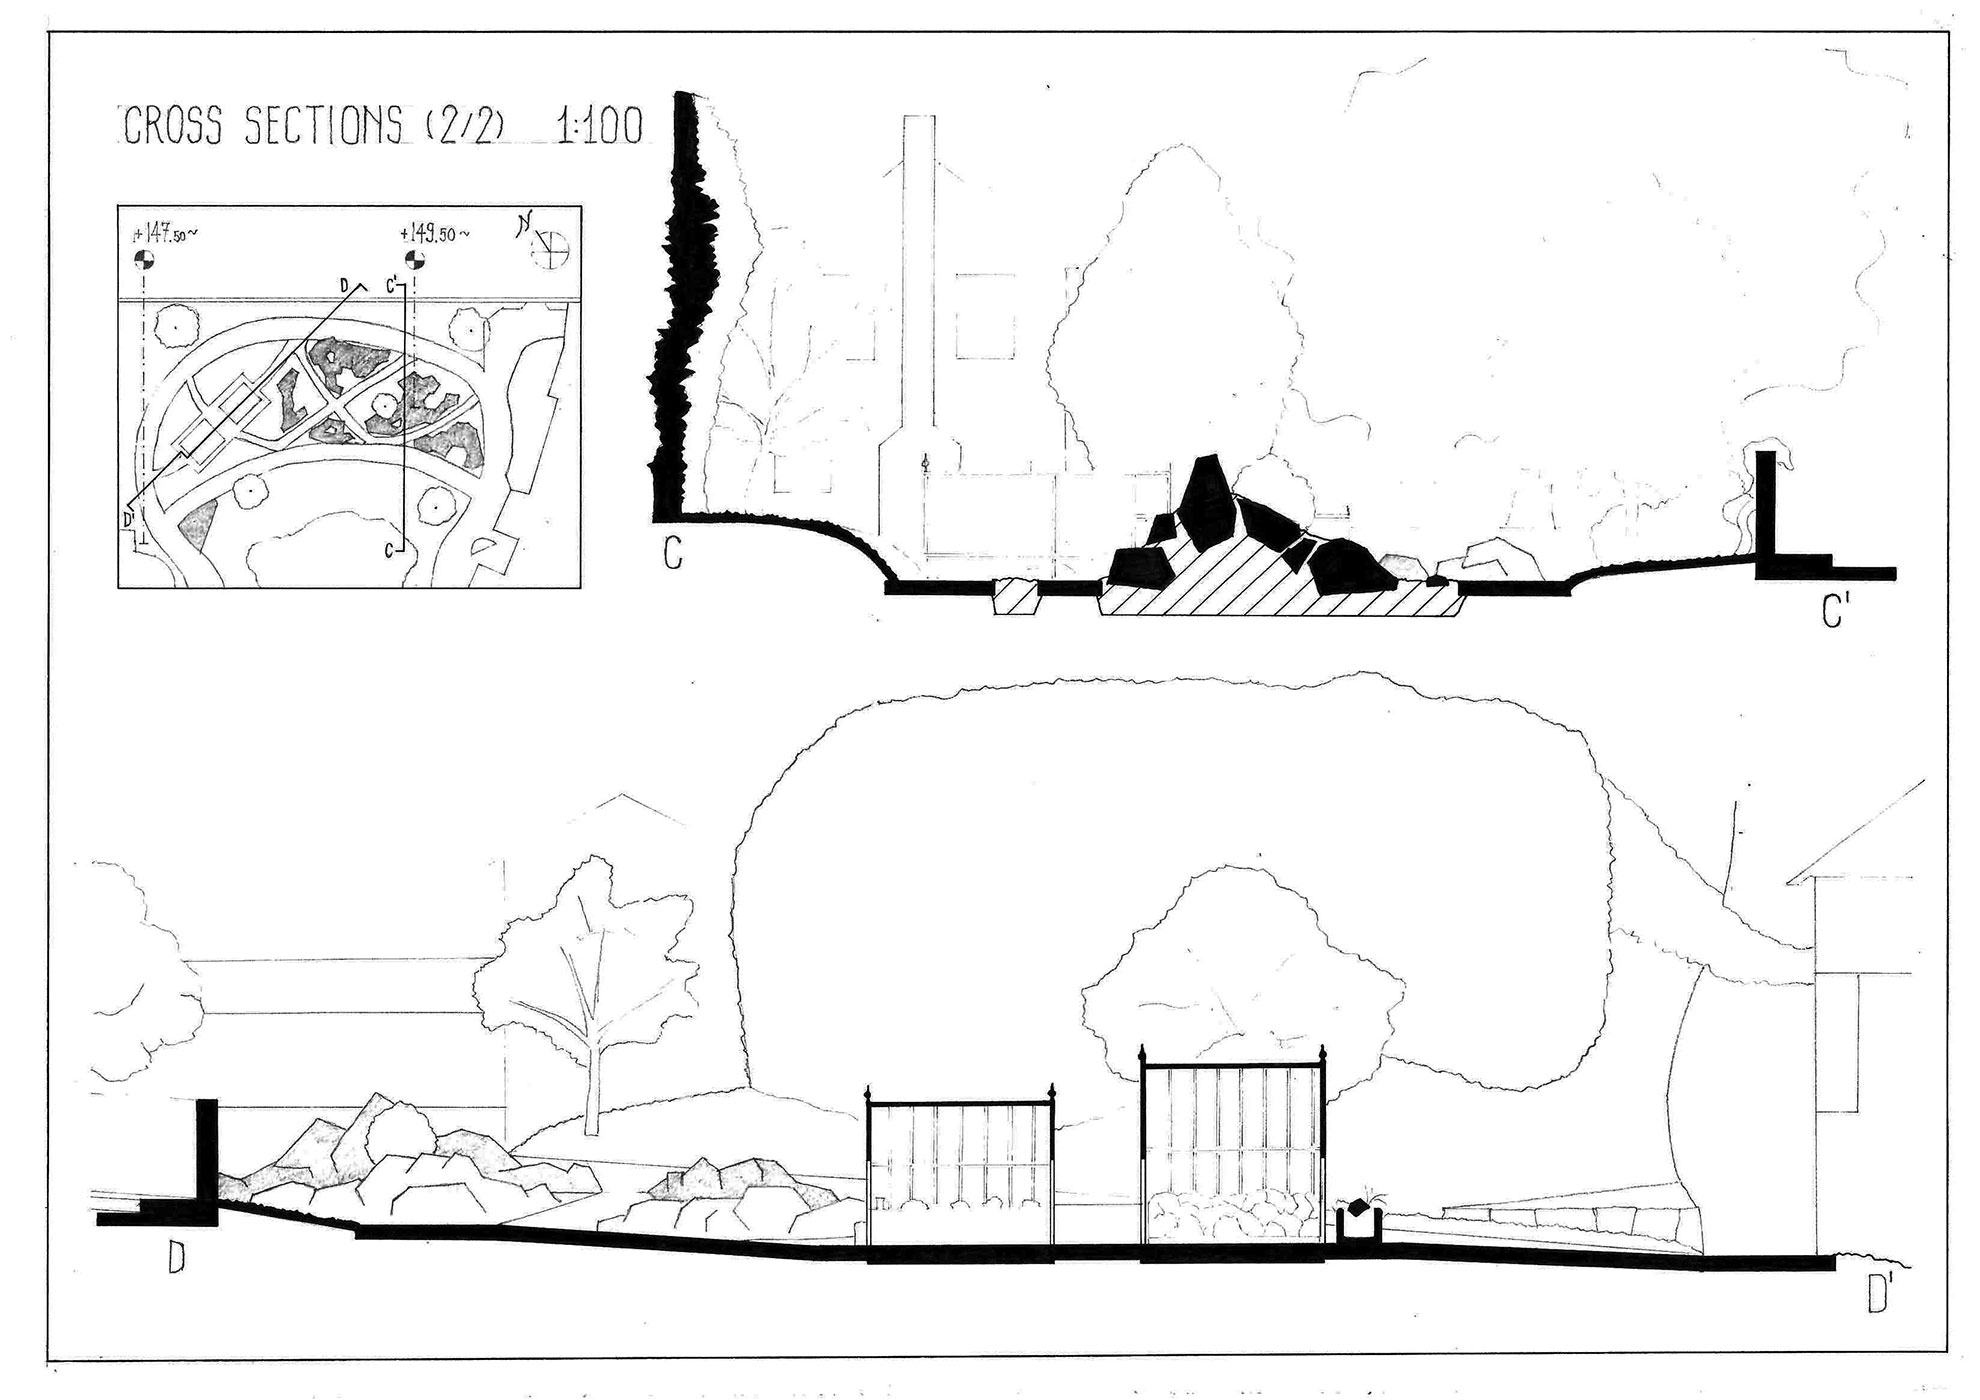 Cross sections (2/2).